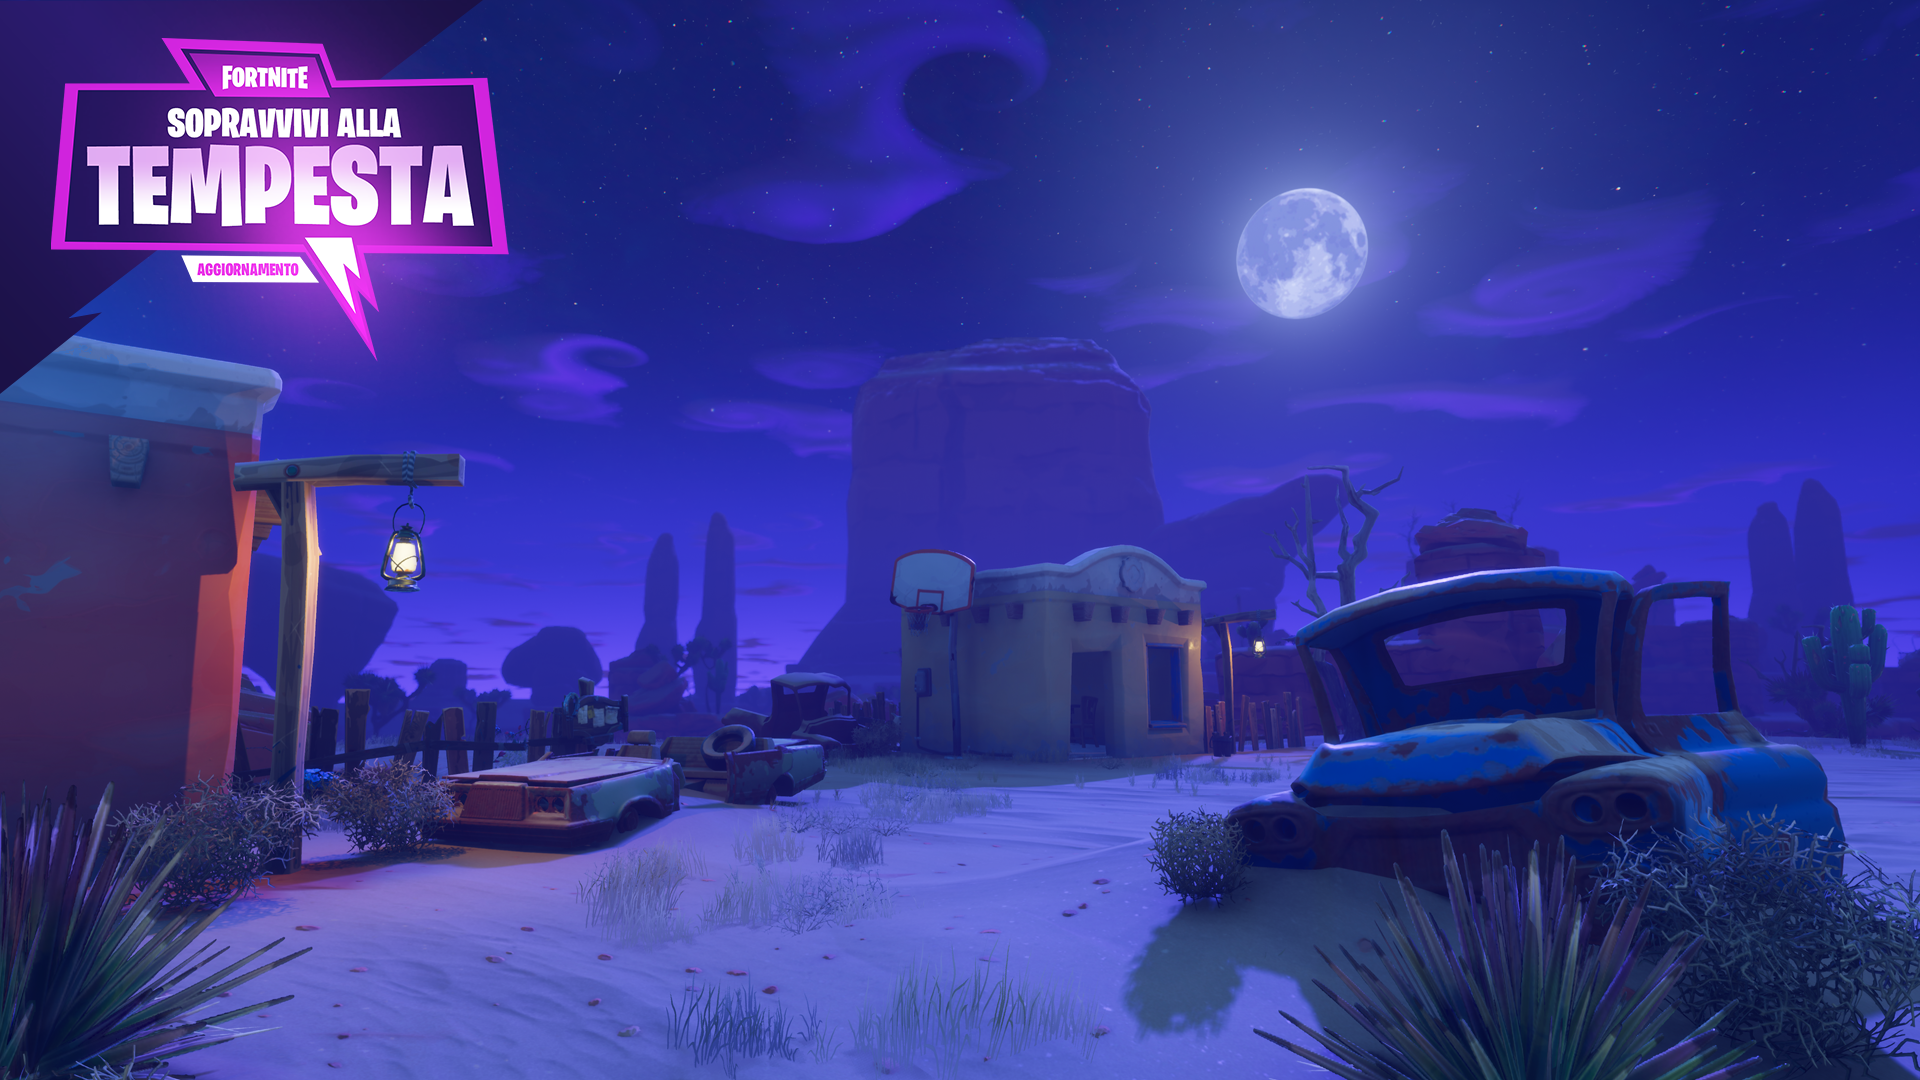 Fortnite%2Fblog%2Fsurvive-the-storm---release-notes%2FIT_2-Canny-Valley-1920x1080-fc778dd10c59458d9db28229c118c29366165229